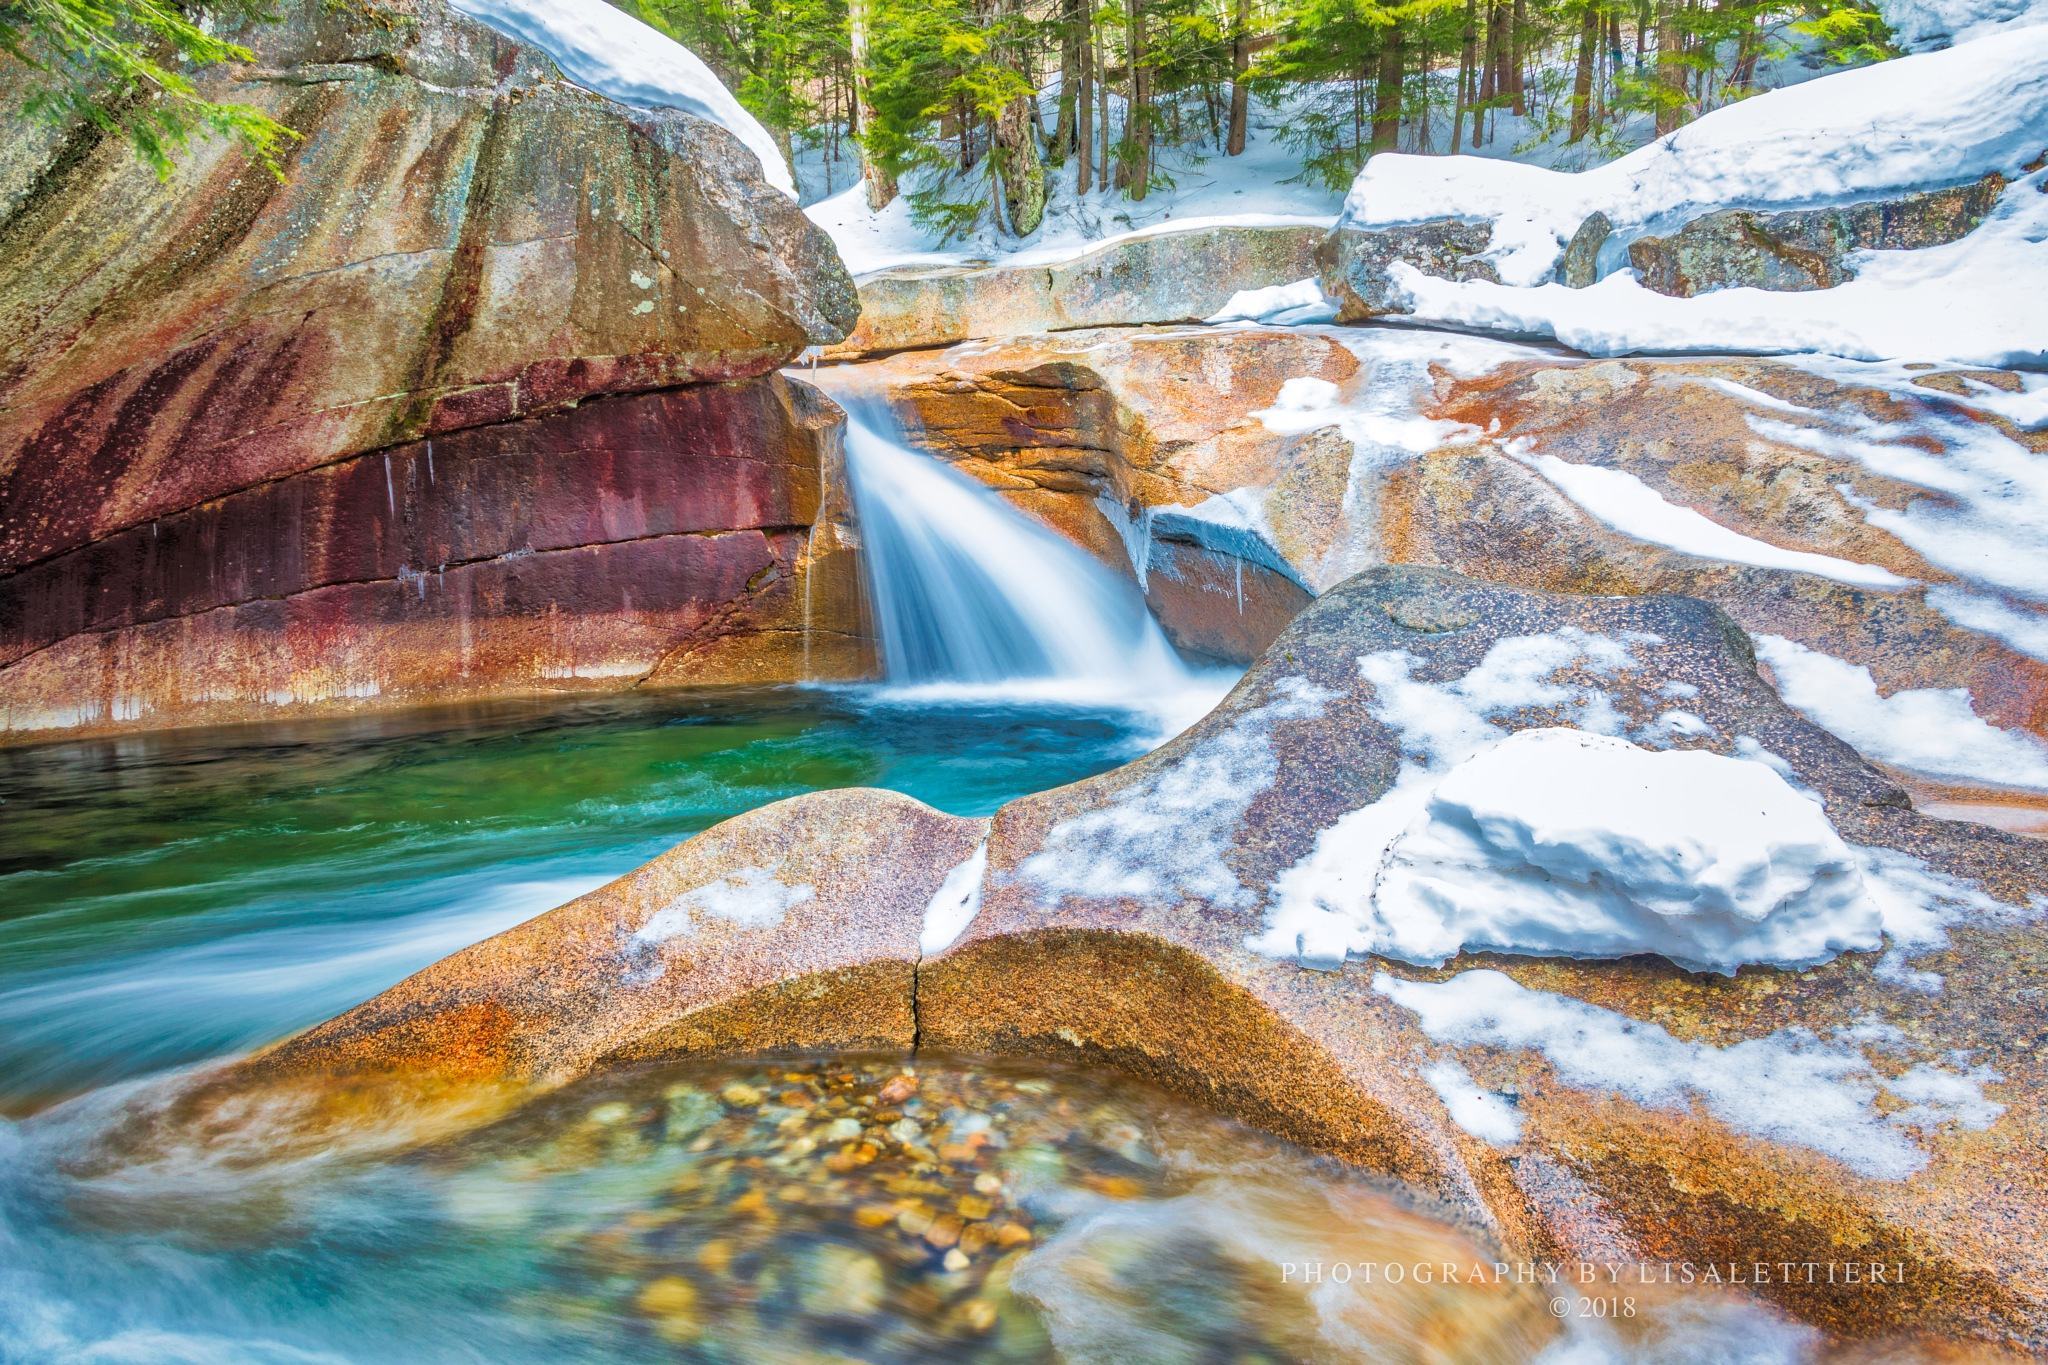 Winter at The Basin by lisalettieri5